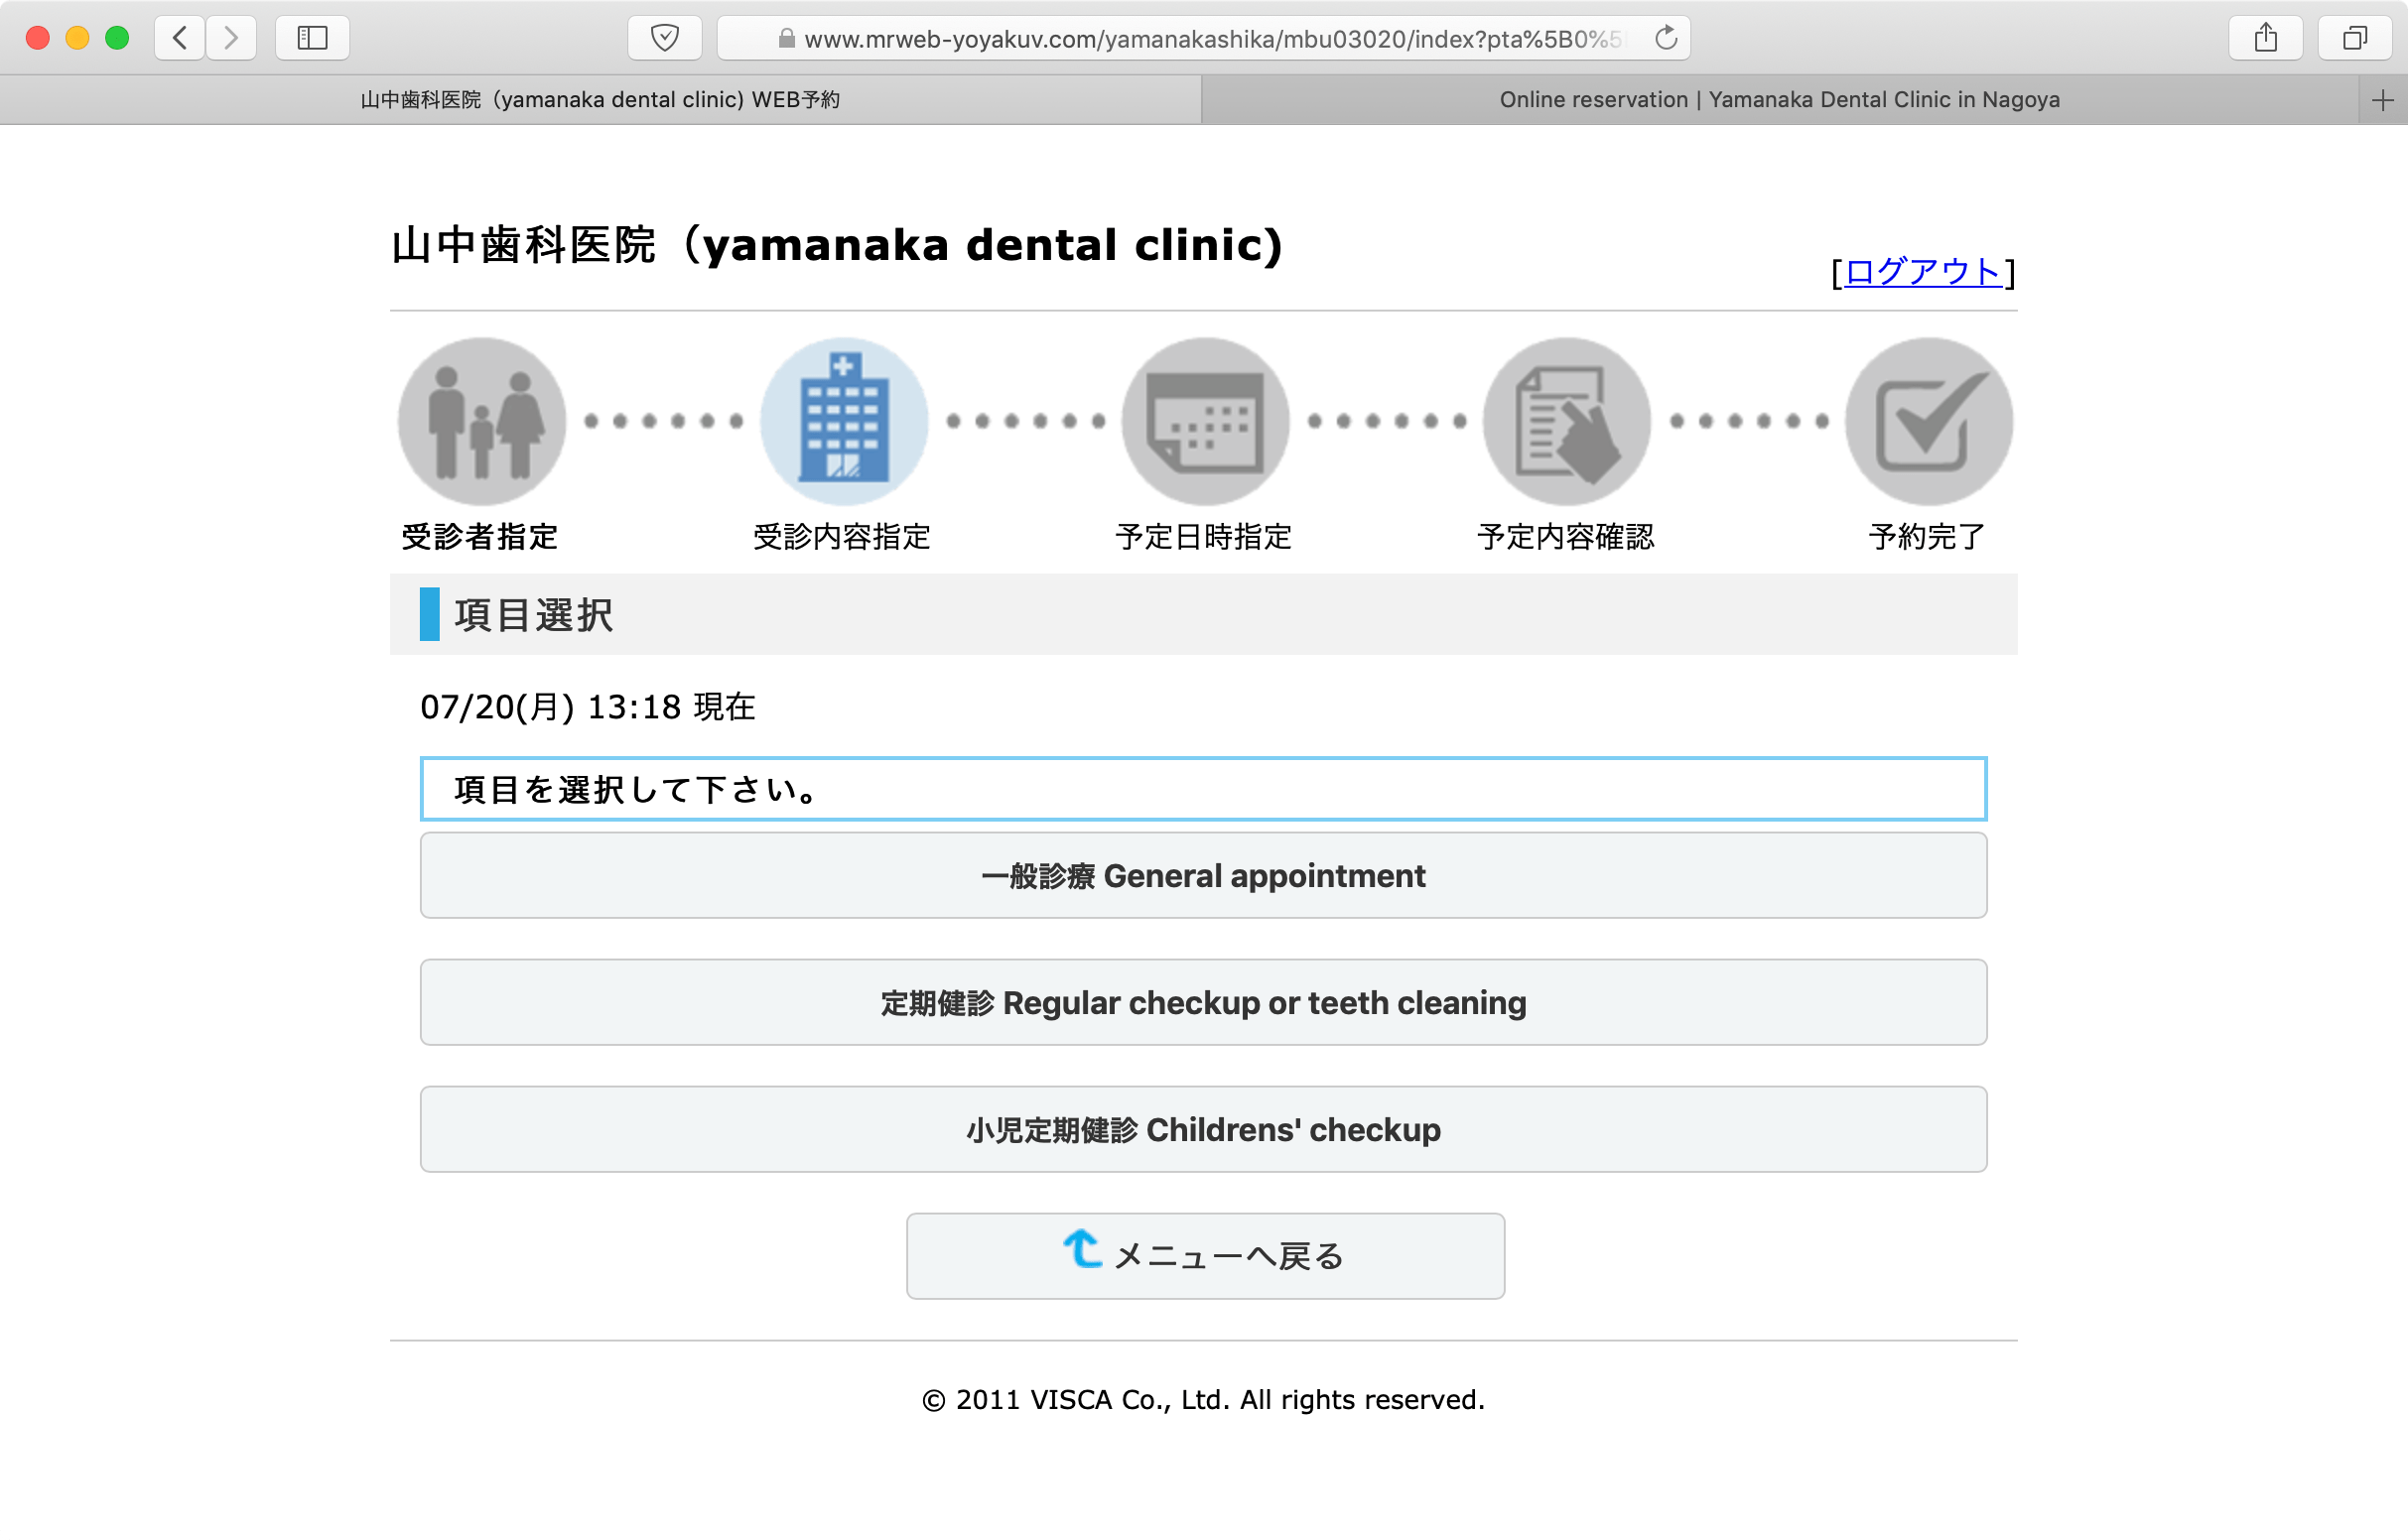 Screenshot of Yamanaka dental clinic online reservation booking screen